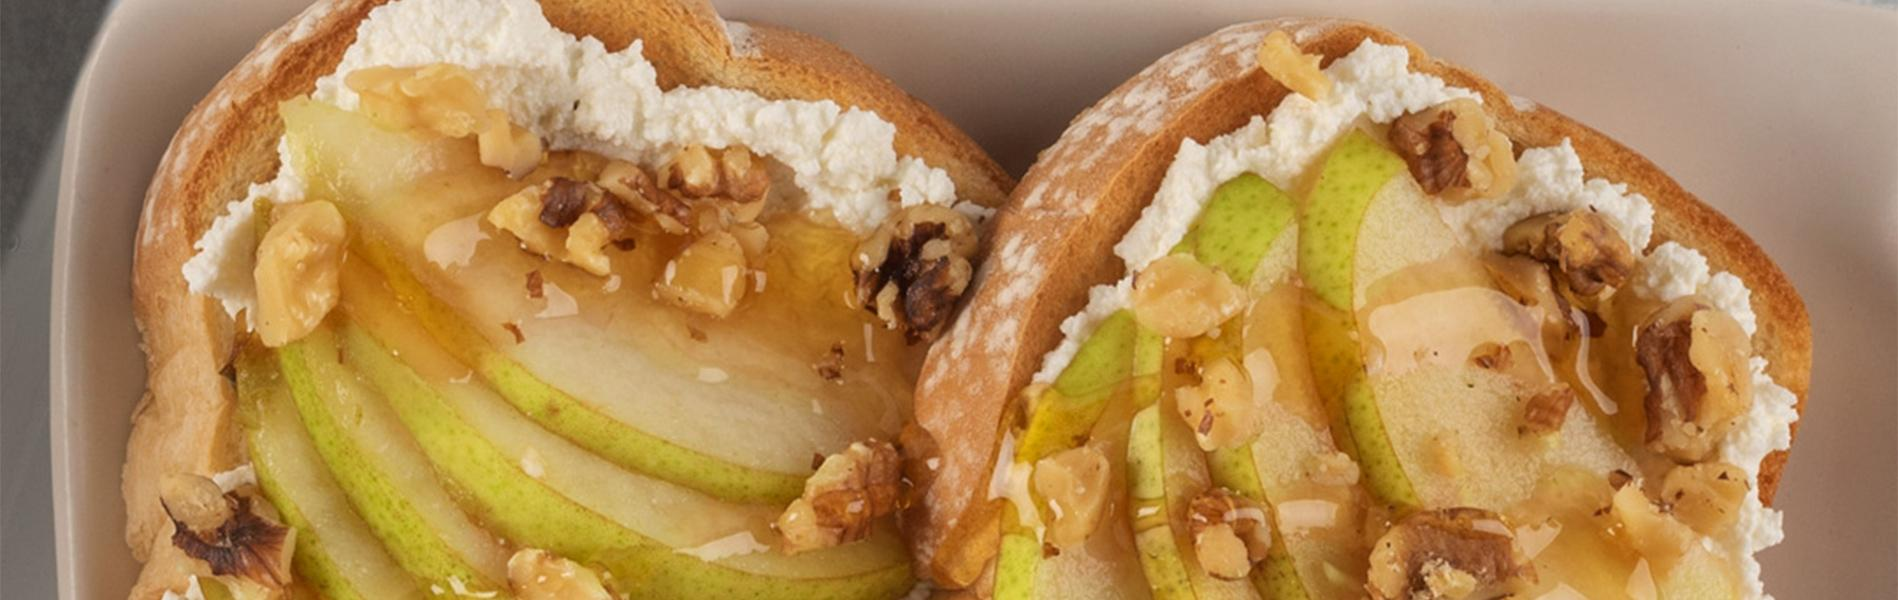 Toast with ricotta, sliced pears, walnuts and a drizzle of honey